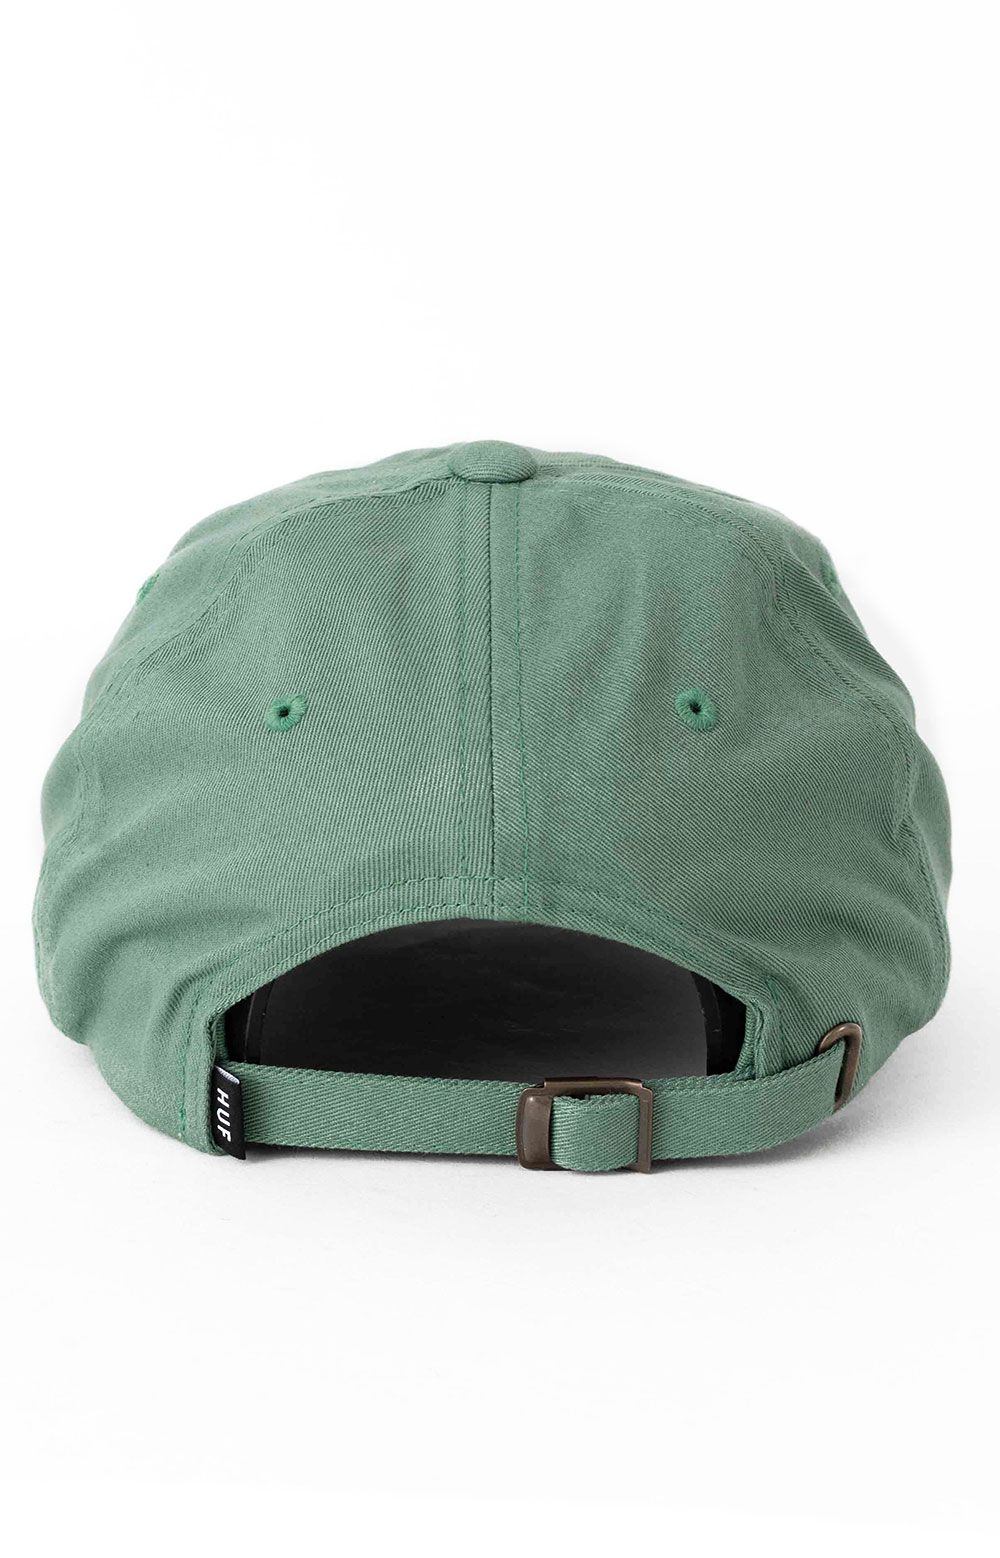 Essentials TT CV 6 Panel Hat - Beryl Green  3